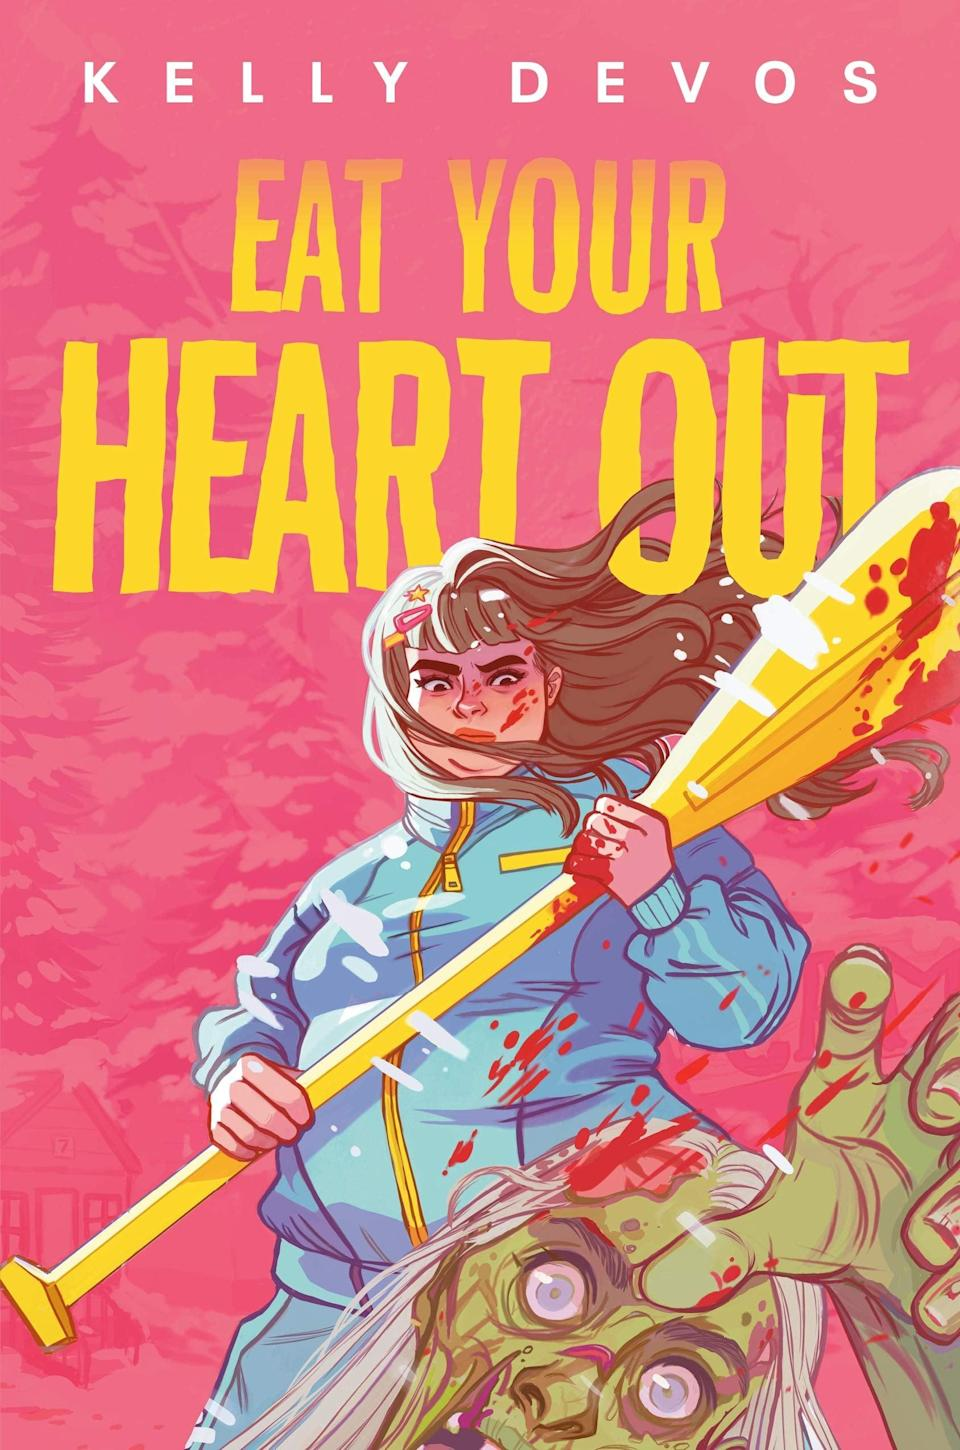 <p>Why yes, you do need a body positive YA zombie apocalypse novel in your life, especially if it's <span><strong>Eat Your Heart Out</strong></span> by Kelly deVos. This darkly hilarious tale of a young woman whose trip to a weight loss camp becomes even more nightmarish with the addition of zombies is a sharply observed slice of social commentary mixed with edge of your seat apocalyptic action.</p> <p><em>Out June 29</em></p>